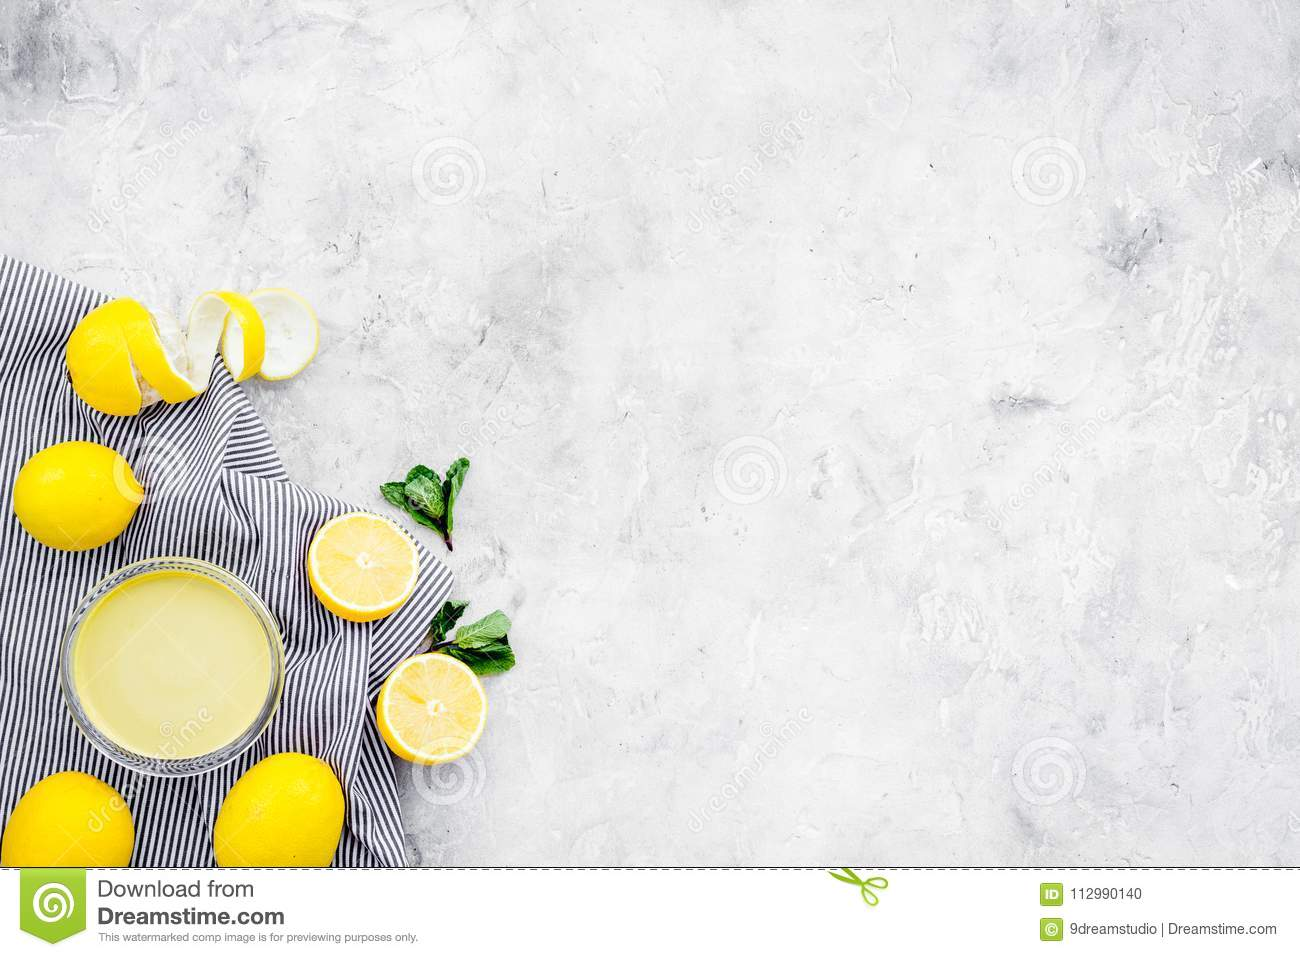 Lemon curd in bowl among lemons on grey background top view copy space